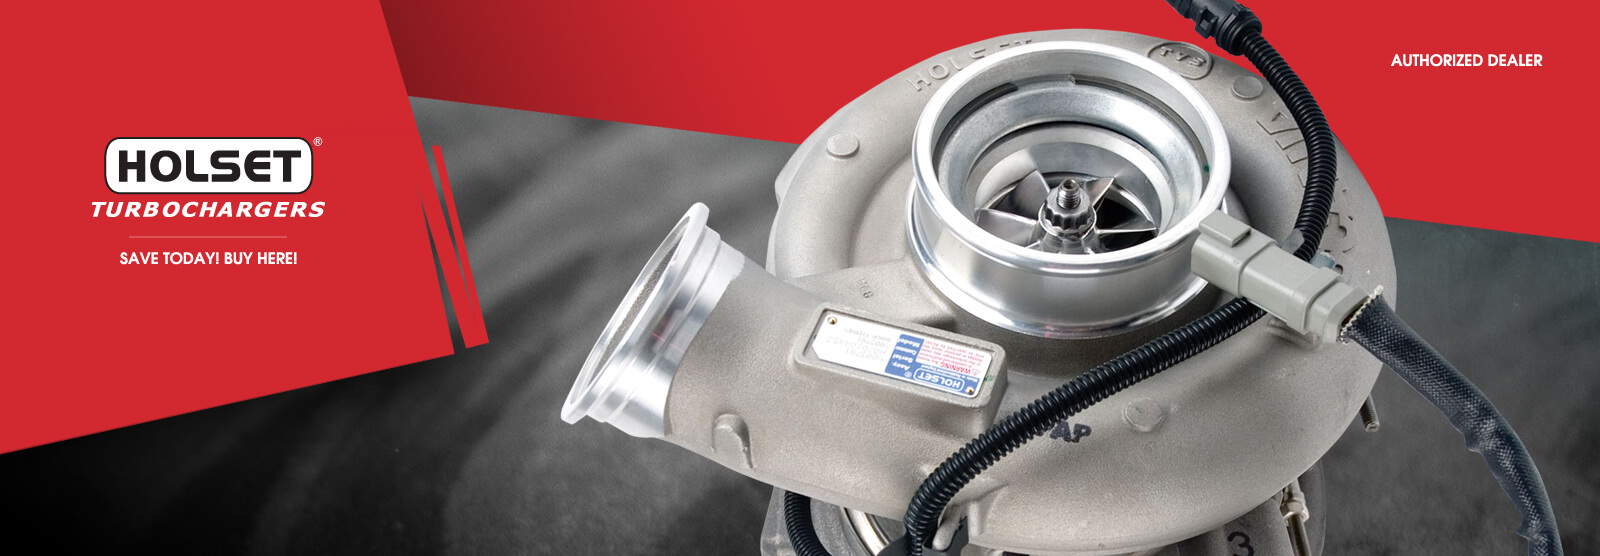 Holset Turbochargers, Authorized Dealer